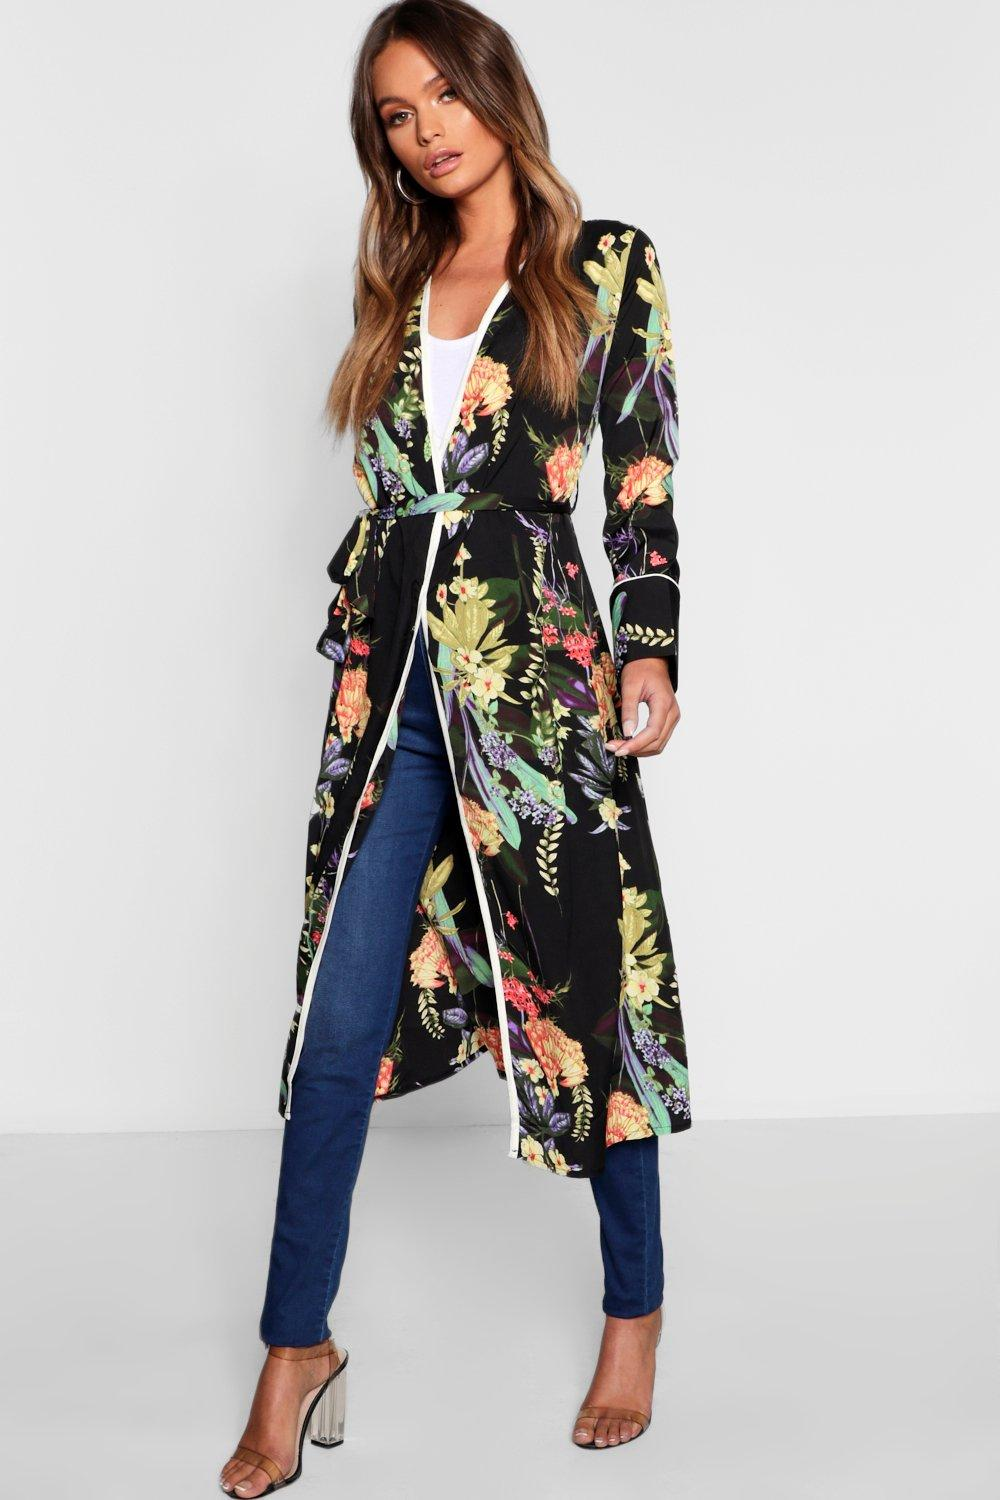 Kimono Belted Floral Dark Kimono Belted Belted Dark black Kimono Floral black Floral Dark vIn8w